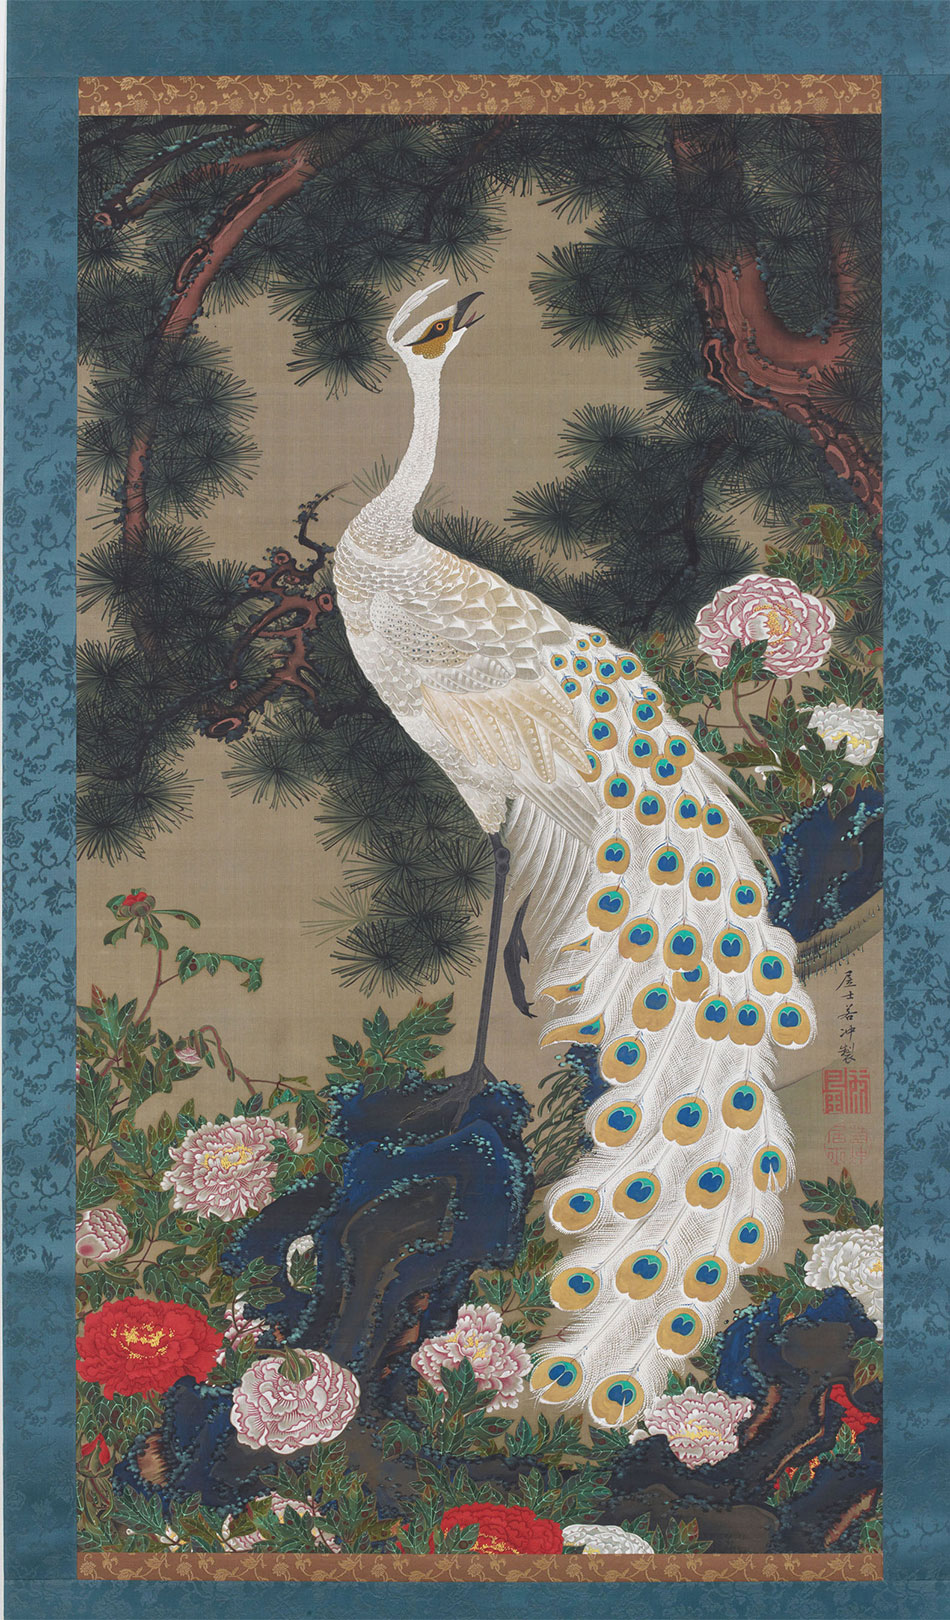 09_jakuchu_white-peacock-and-peonies-under-a-pine_950_w